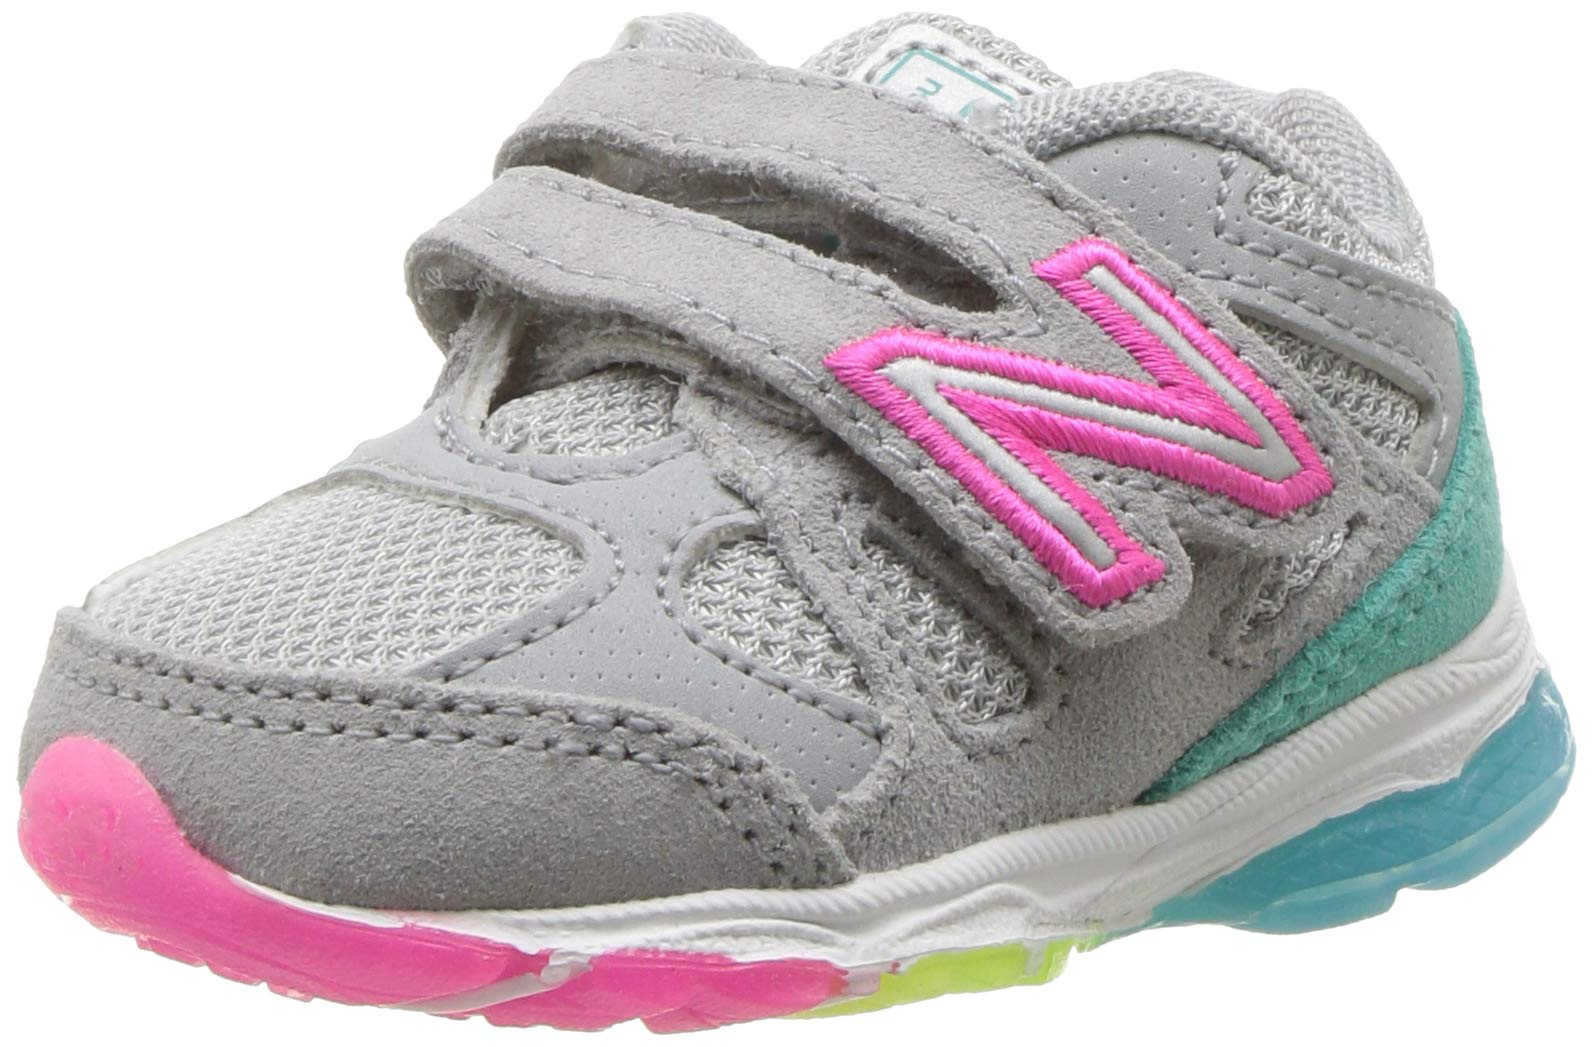 New Balance Girls' 888v1 Hook and Loop Running Shoe, Silver Mink/Rainbow, 10 W US Toddler